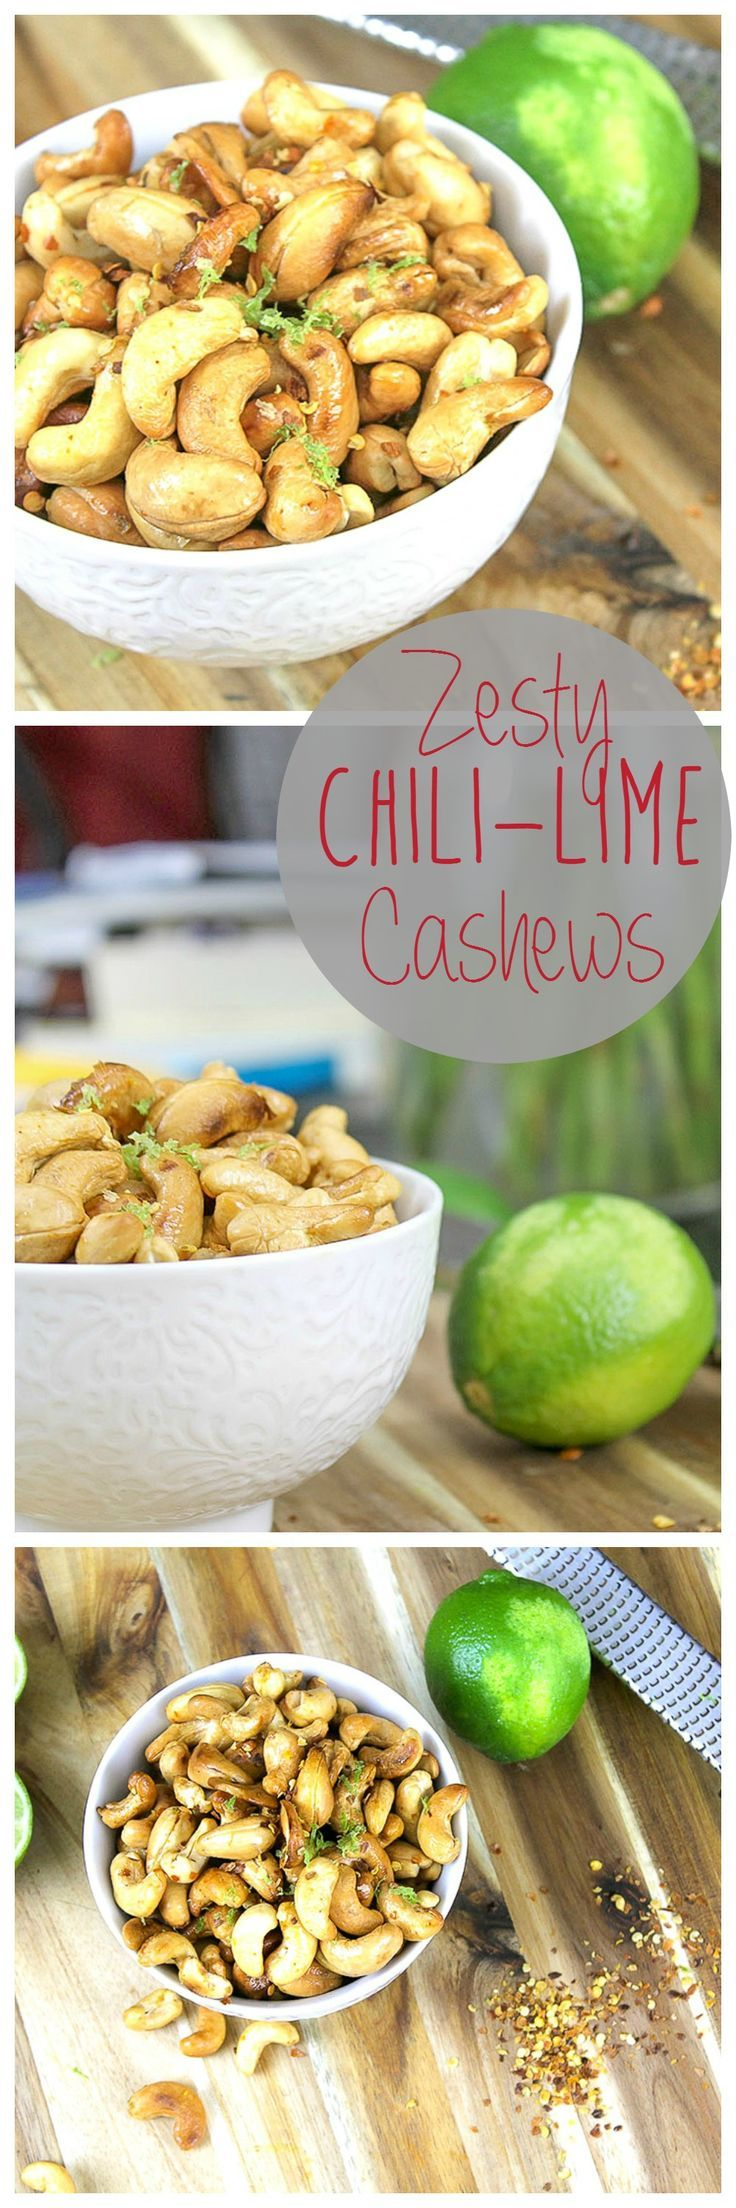 These roasted cashews have a little kick to them with a bright, zesty finish. Tossed in olive oil and lime zest with a red pepper finish. Great for game-day snacking! Zesty Chili Lime Cashews Recipe | Take Two Tapas